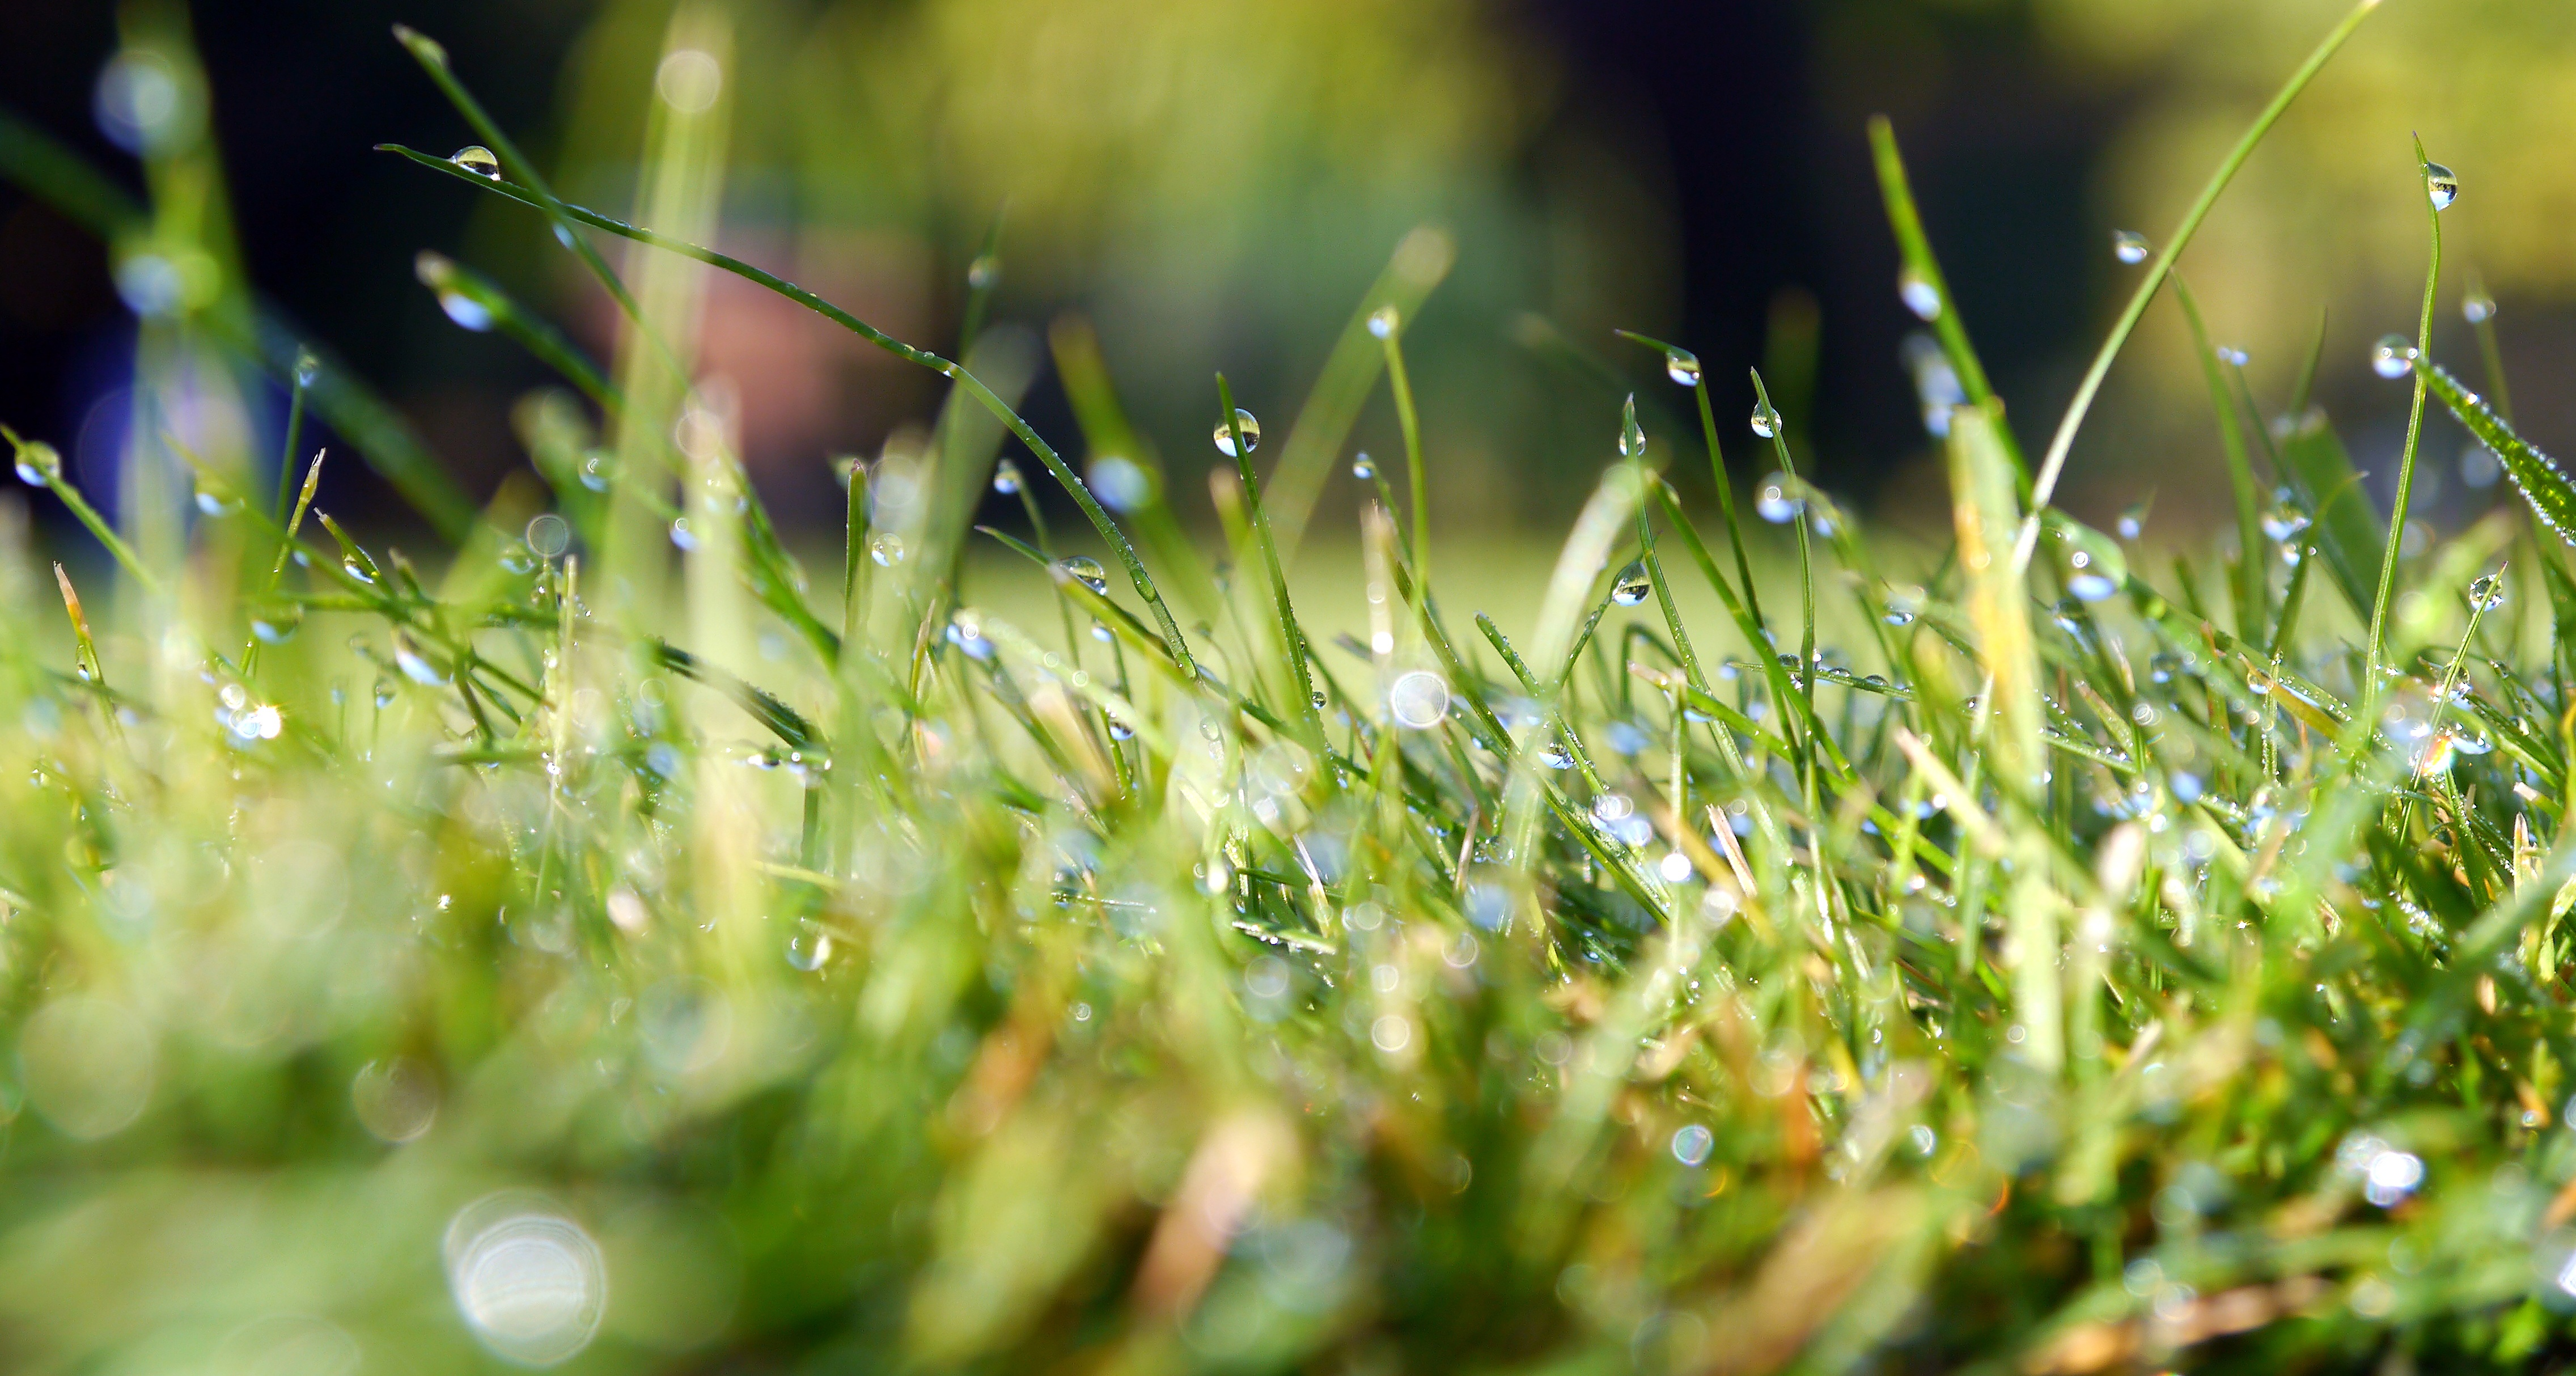 st_louis_lawn_weed_Control_service_grass